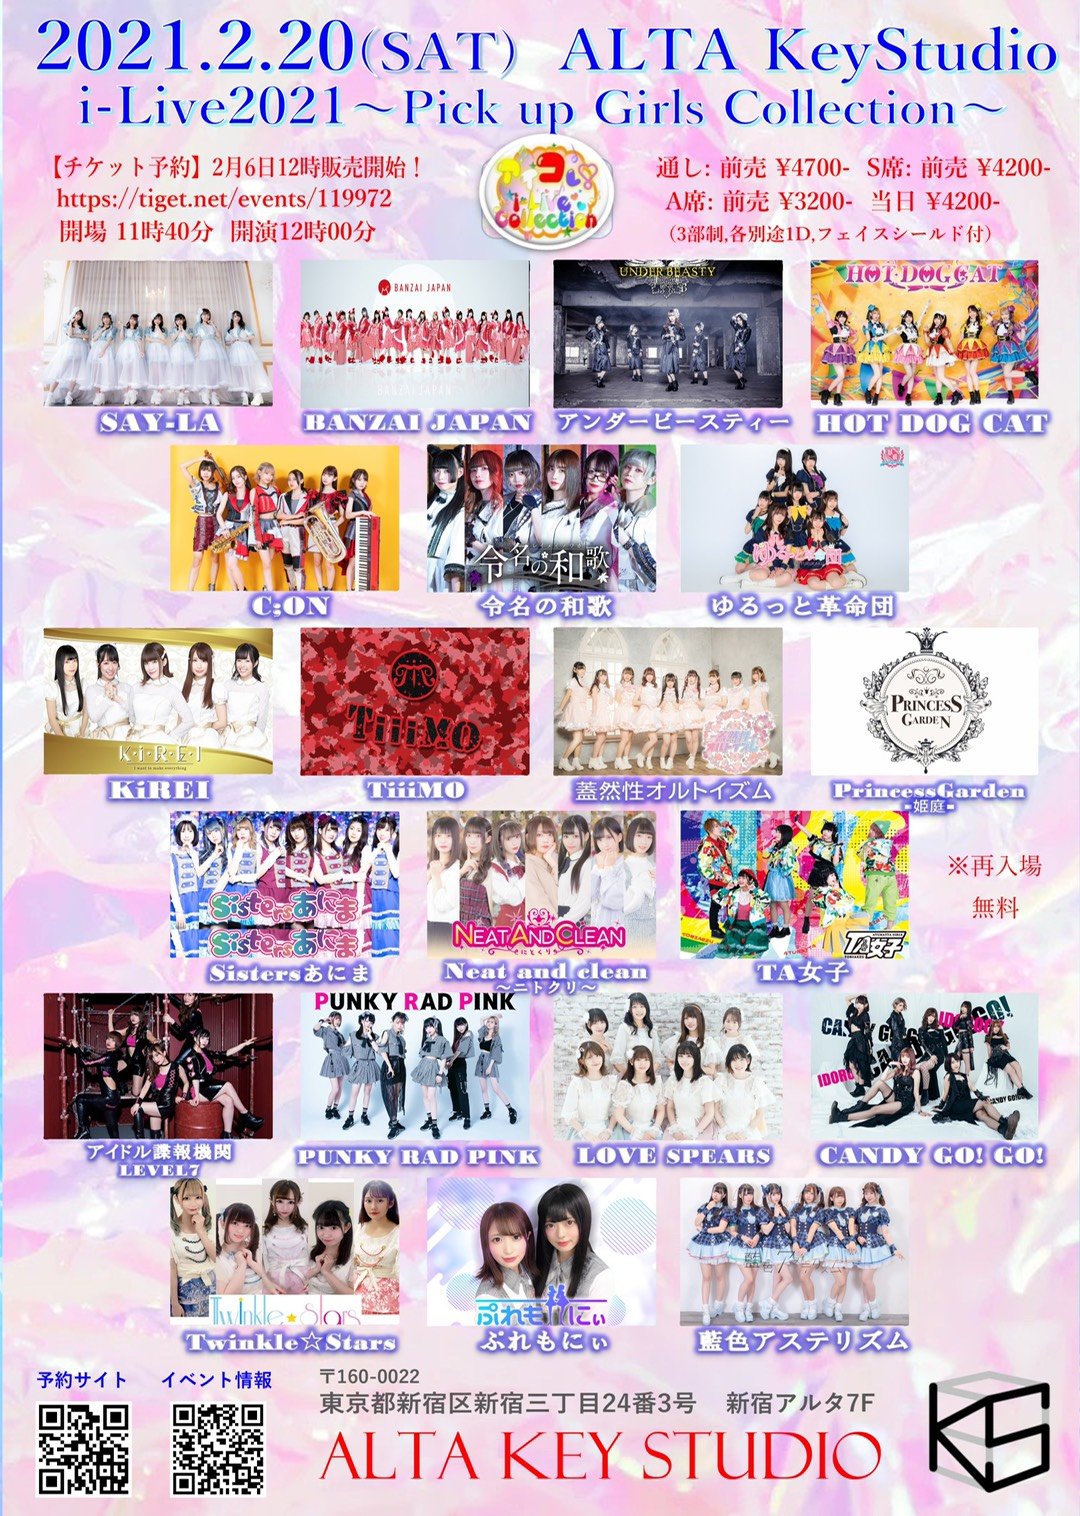 i-Live2021 ~Pick up Girls Collection~